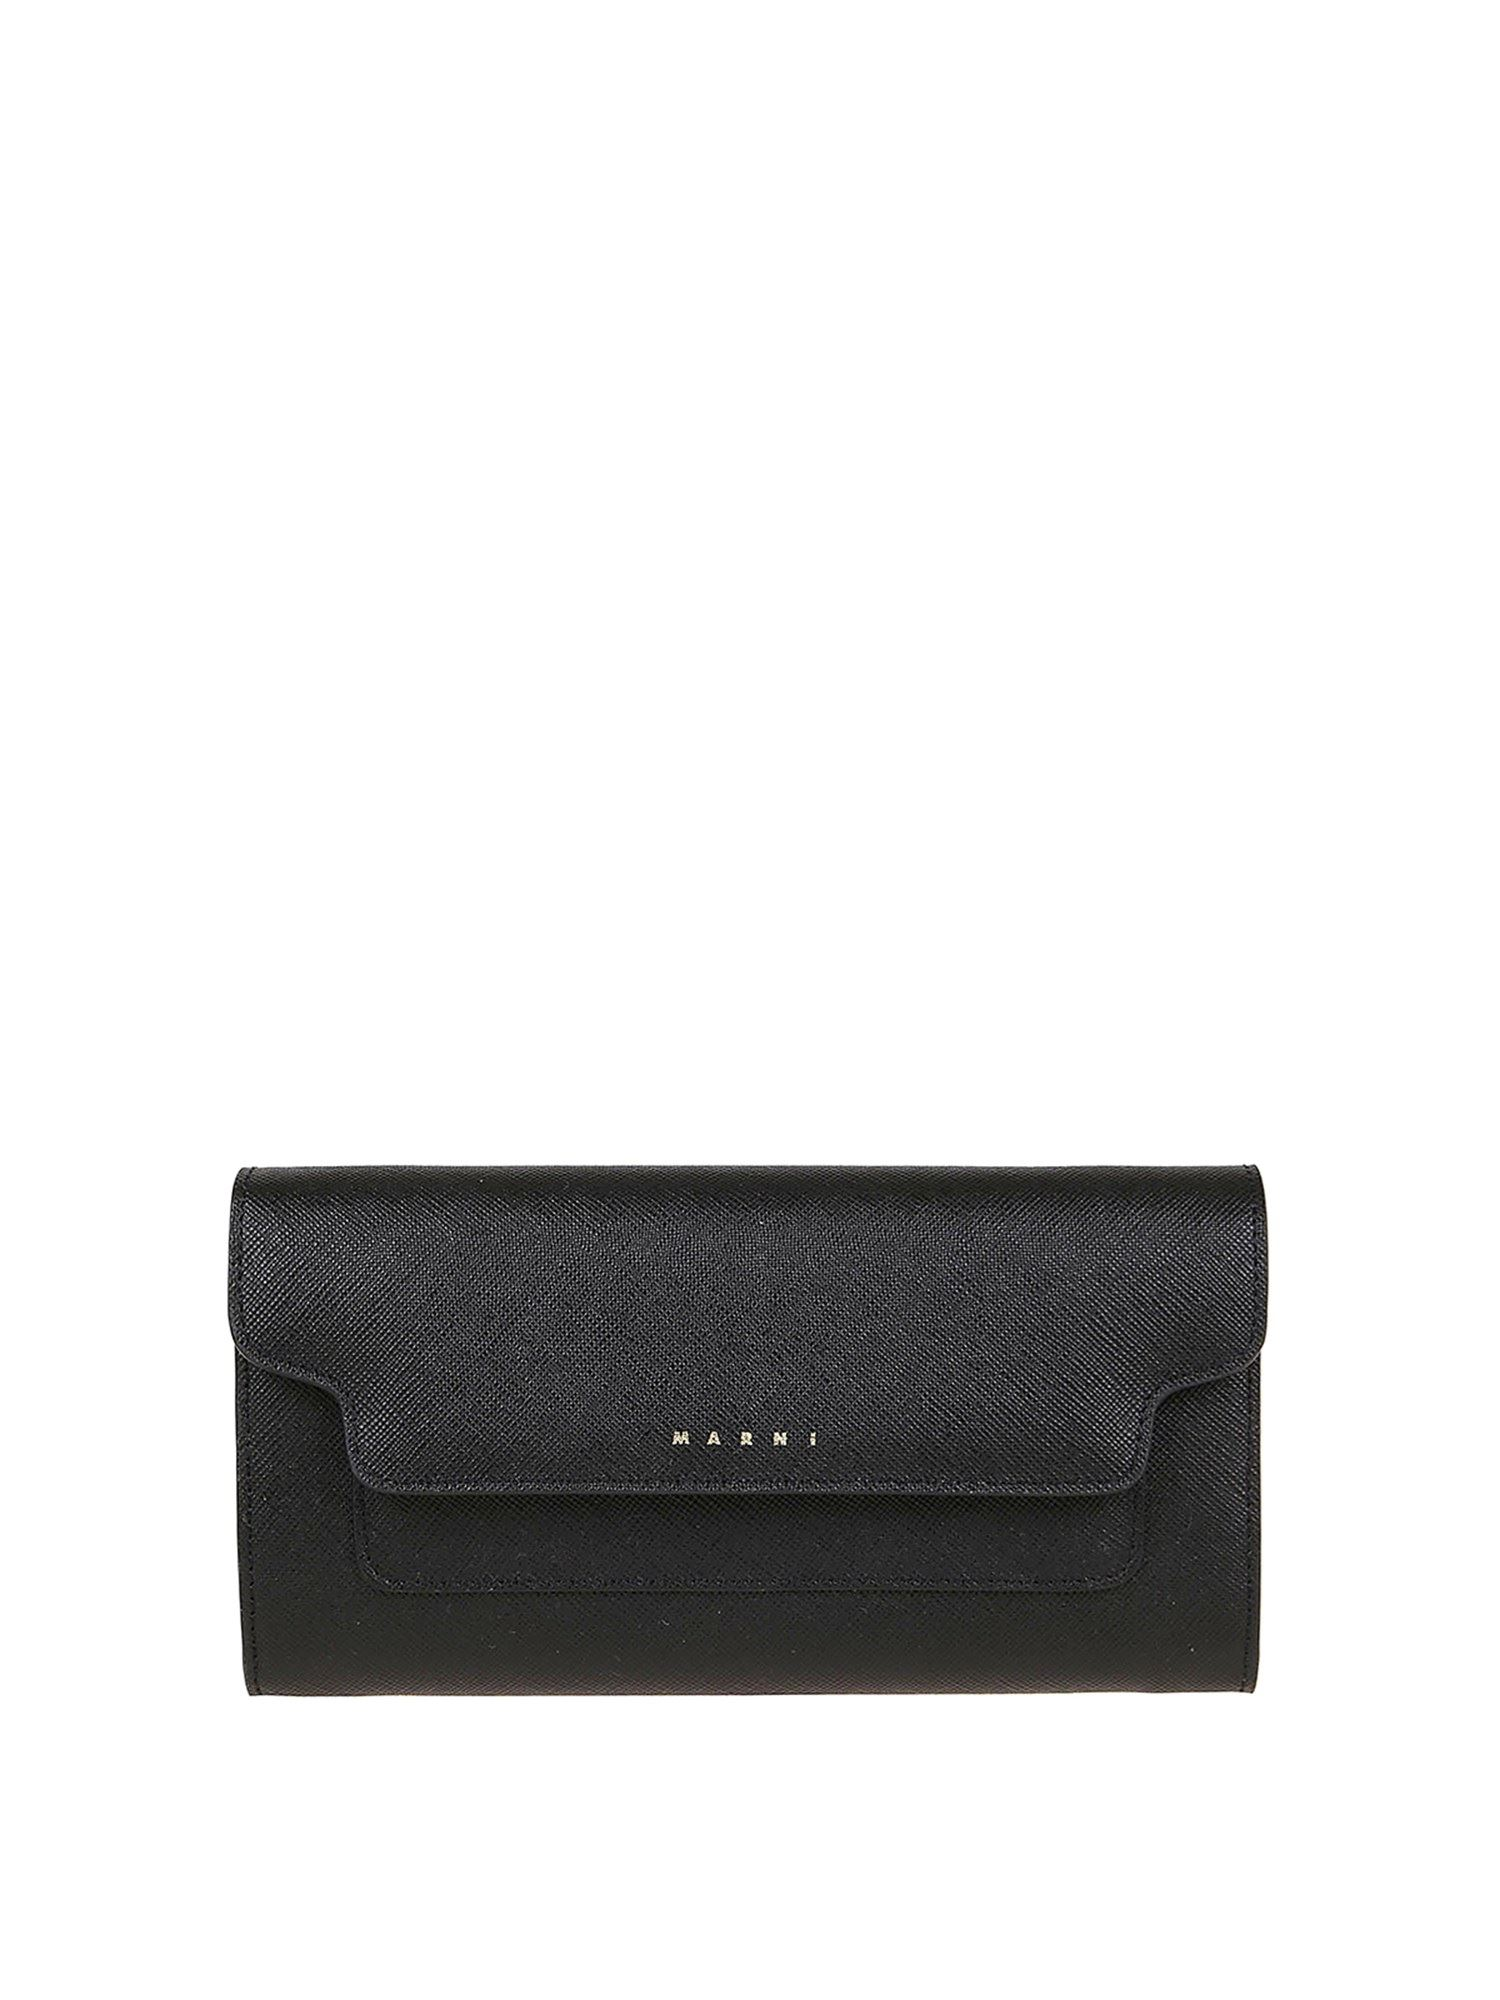 Marni LONG STRAP WALLET IN BLACK